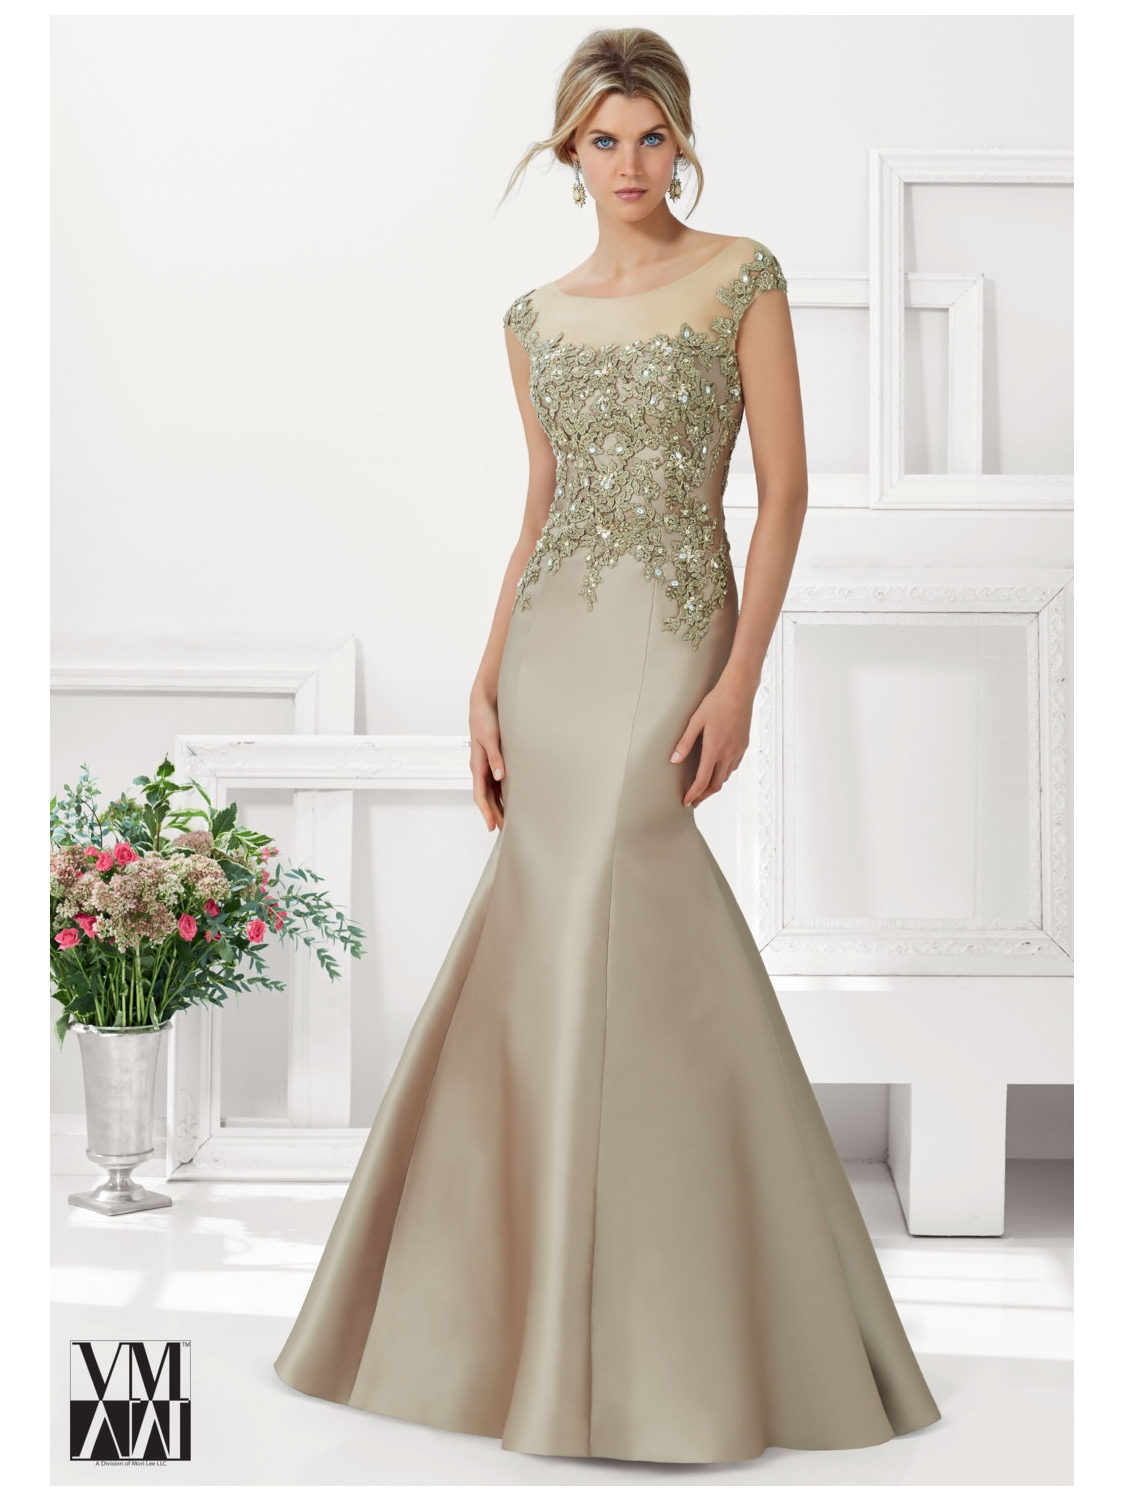 Vm collection by mori lee special occasion dress style 71102 house of brides